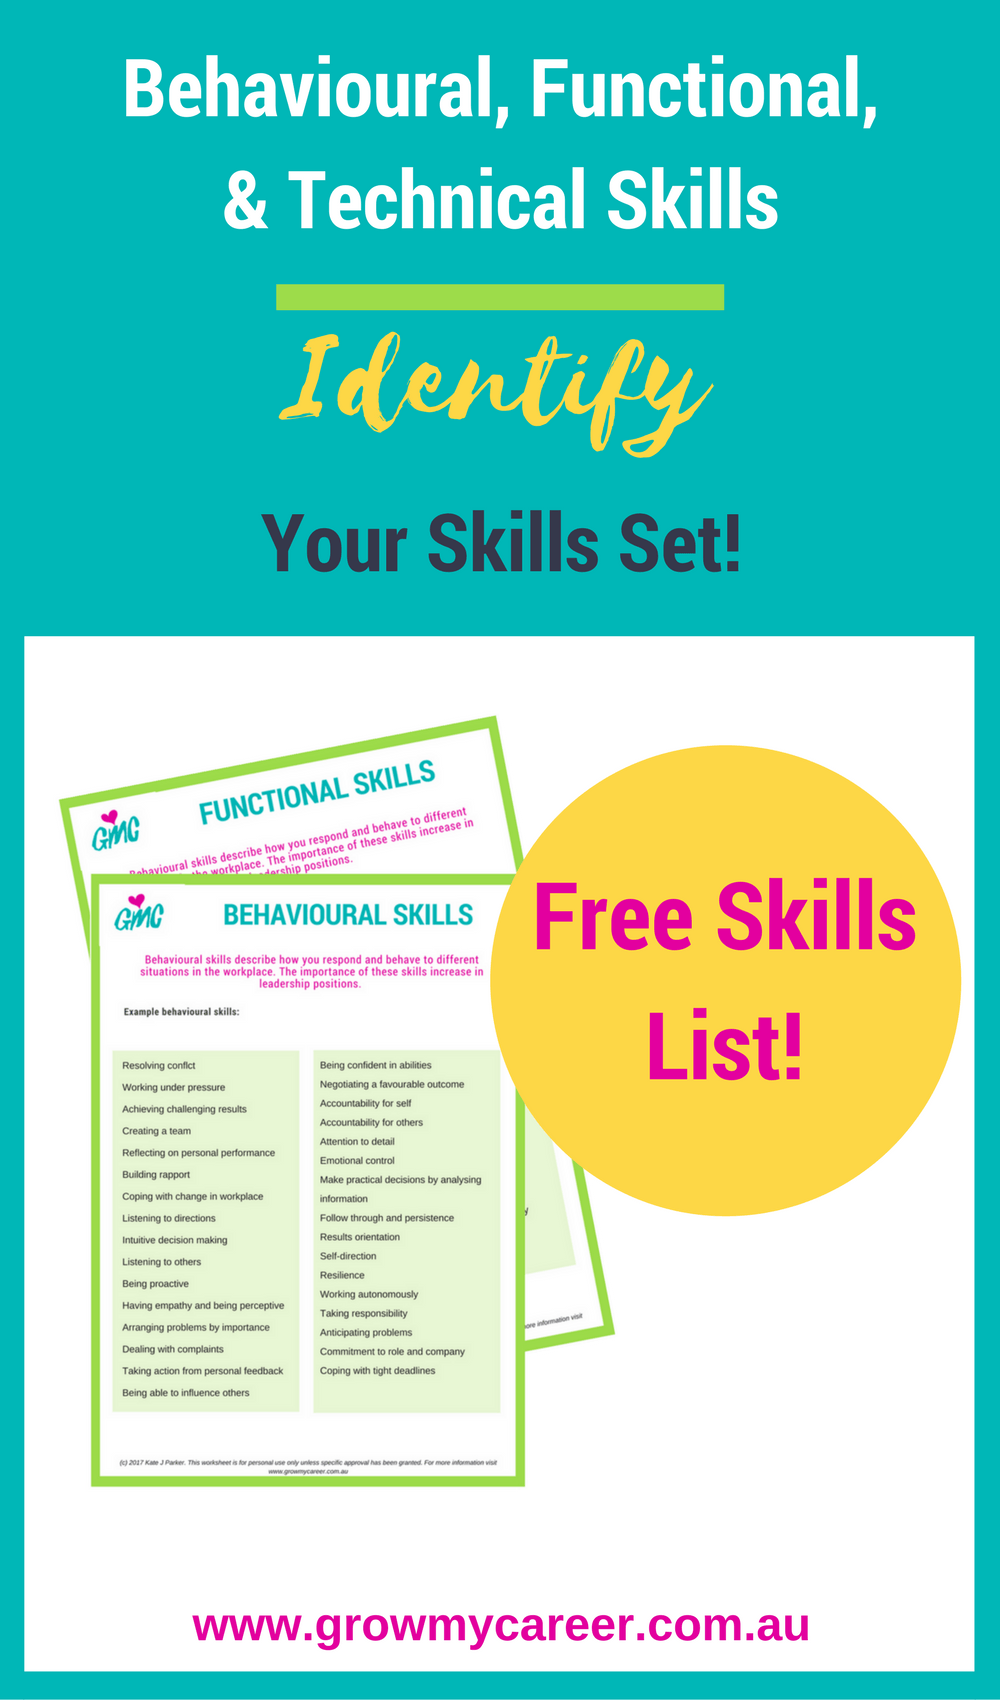 Identify Your Skills Set With This List Of Behavioural And Functional Skills Job Search Motivation Career Motivation Job Hunting